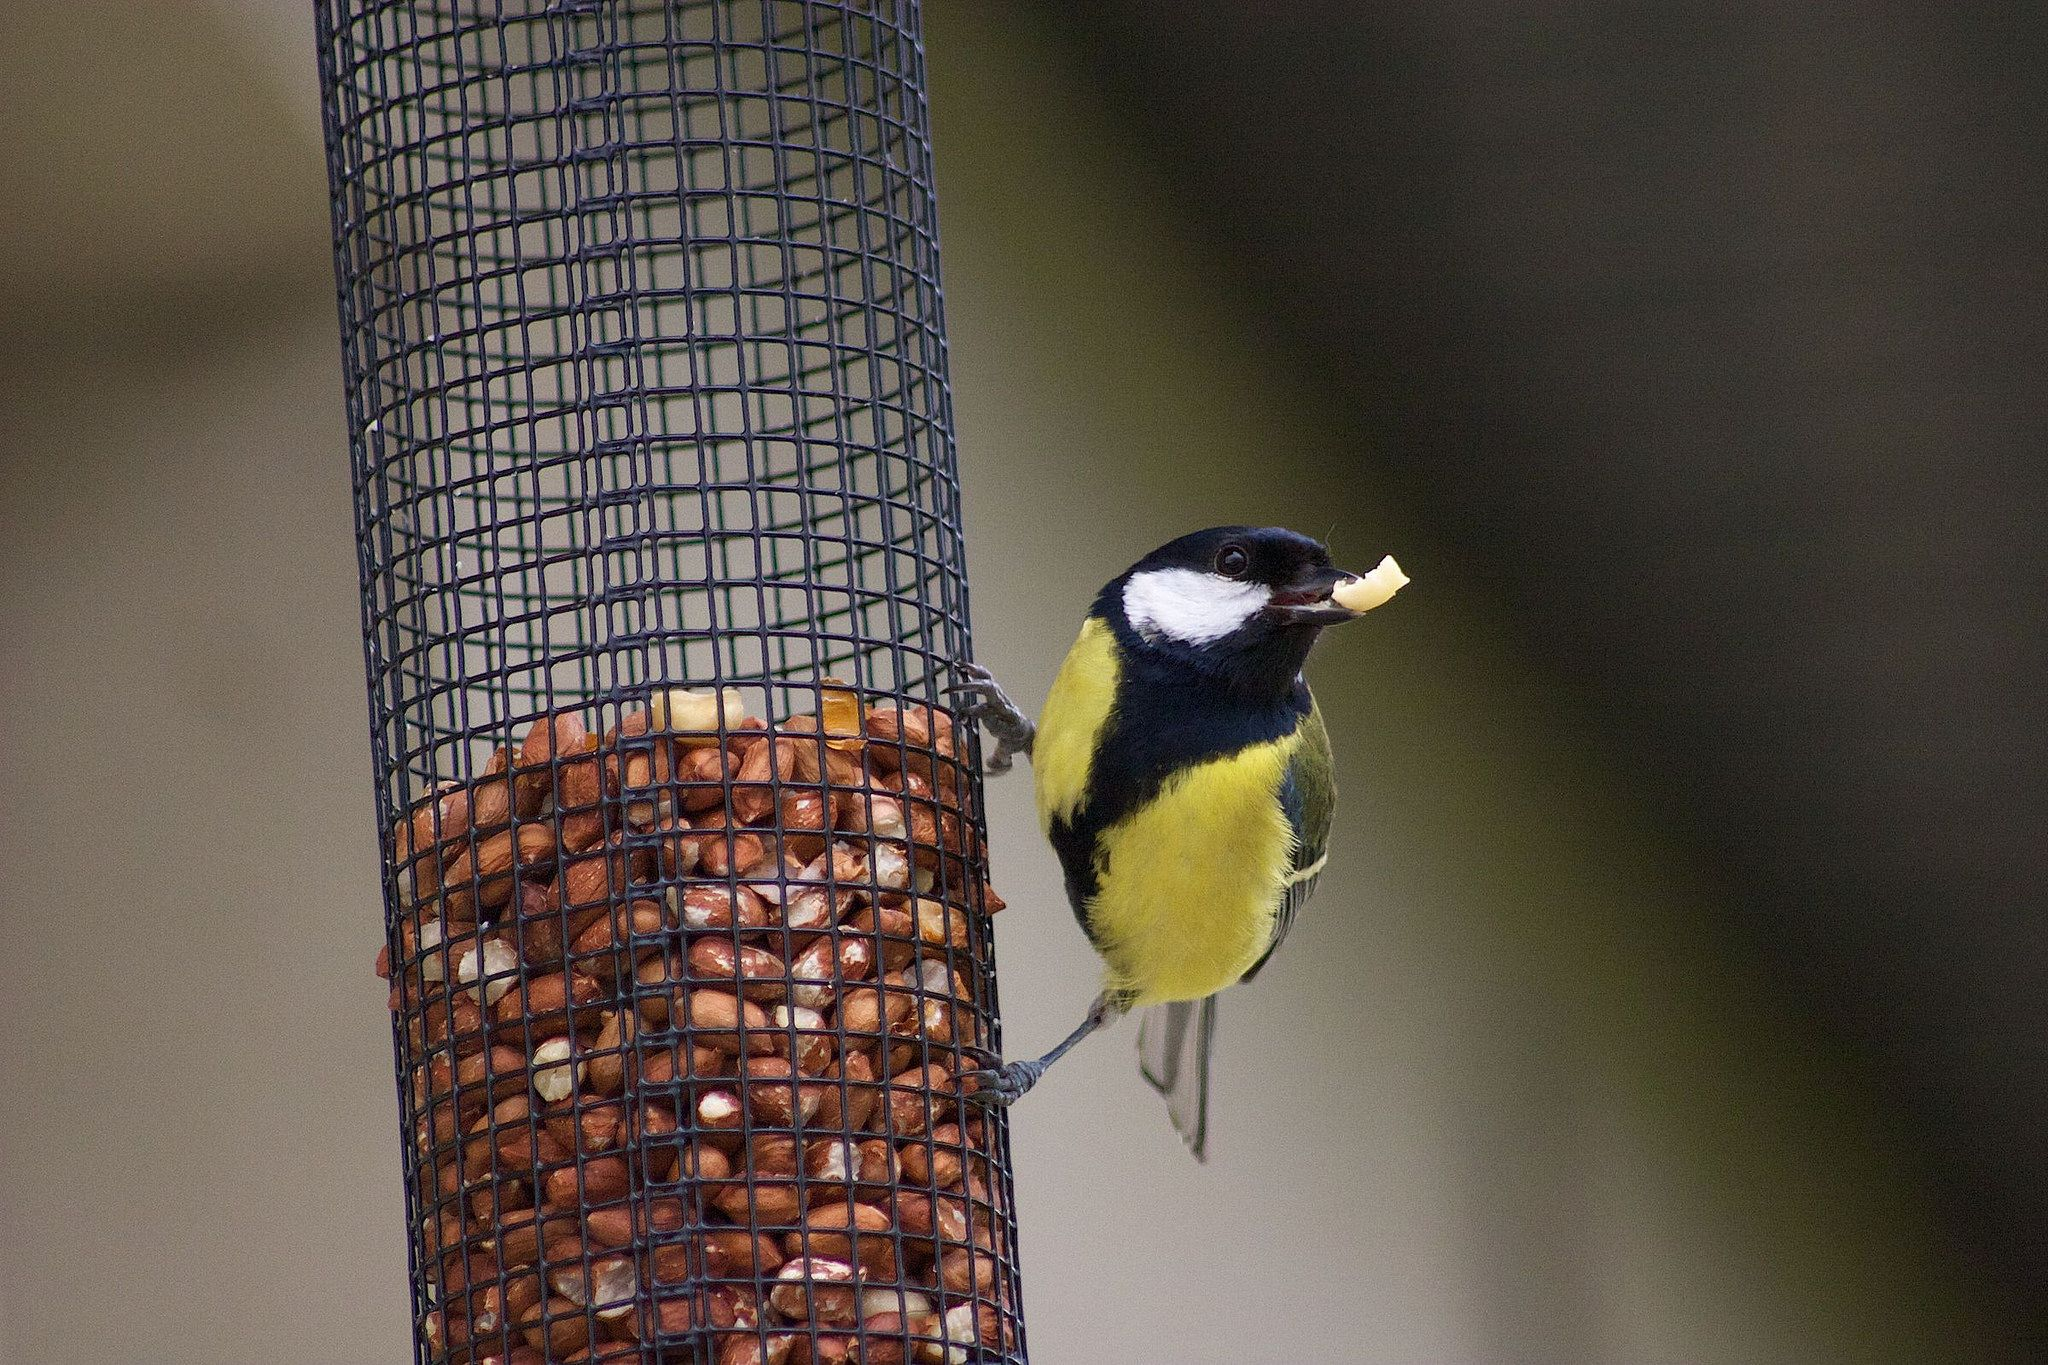 Great_Tit_Bird_at_Birdfeeder